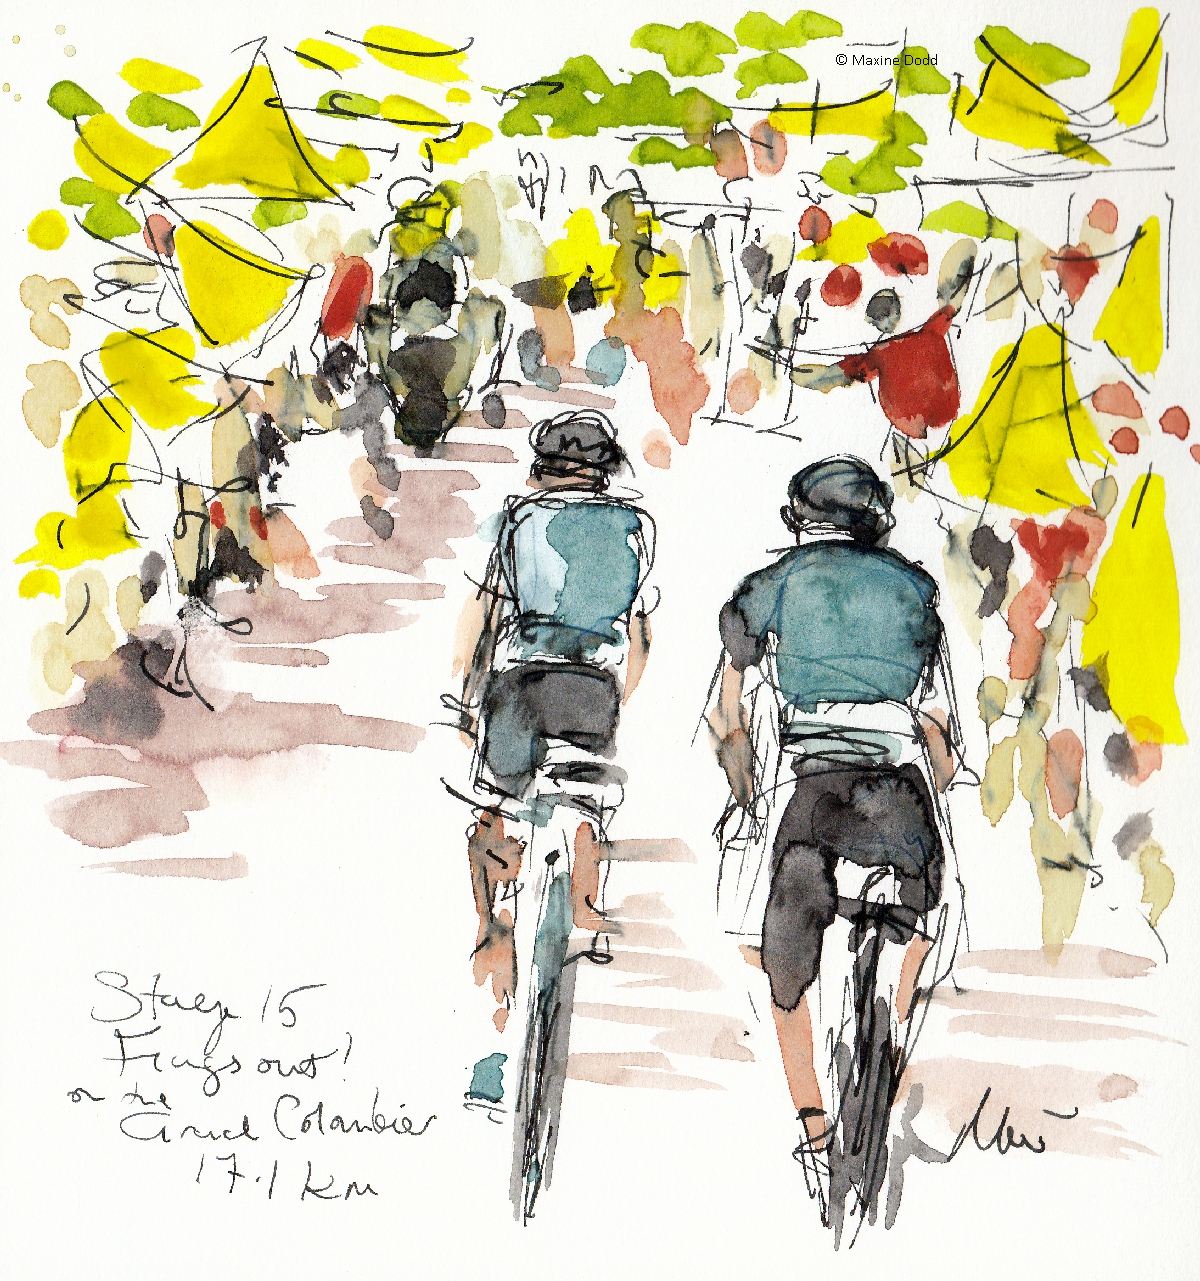 Flags out on the Grand Colombier, Stage 15, watercolour, pen and ink by Maxine Dodd